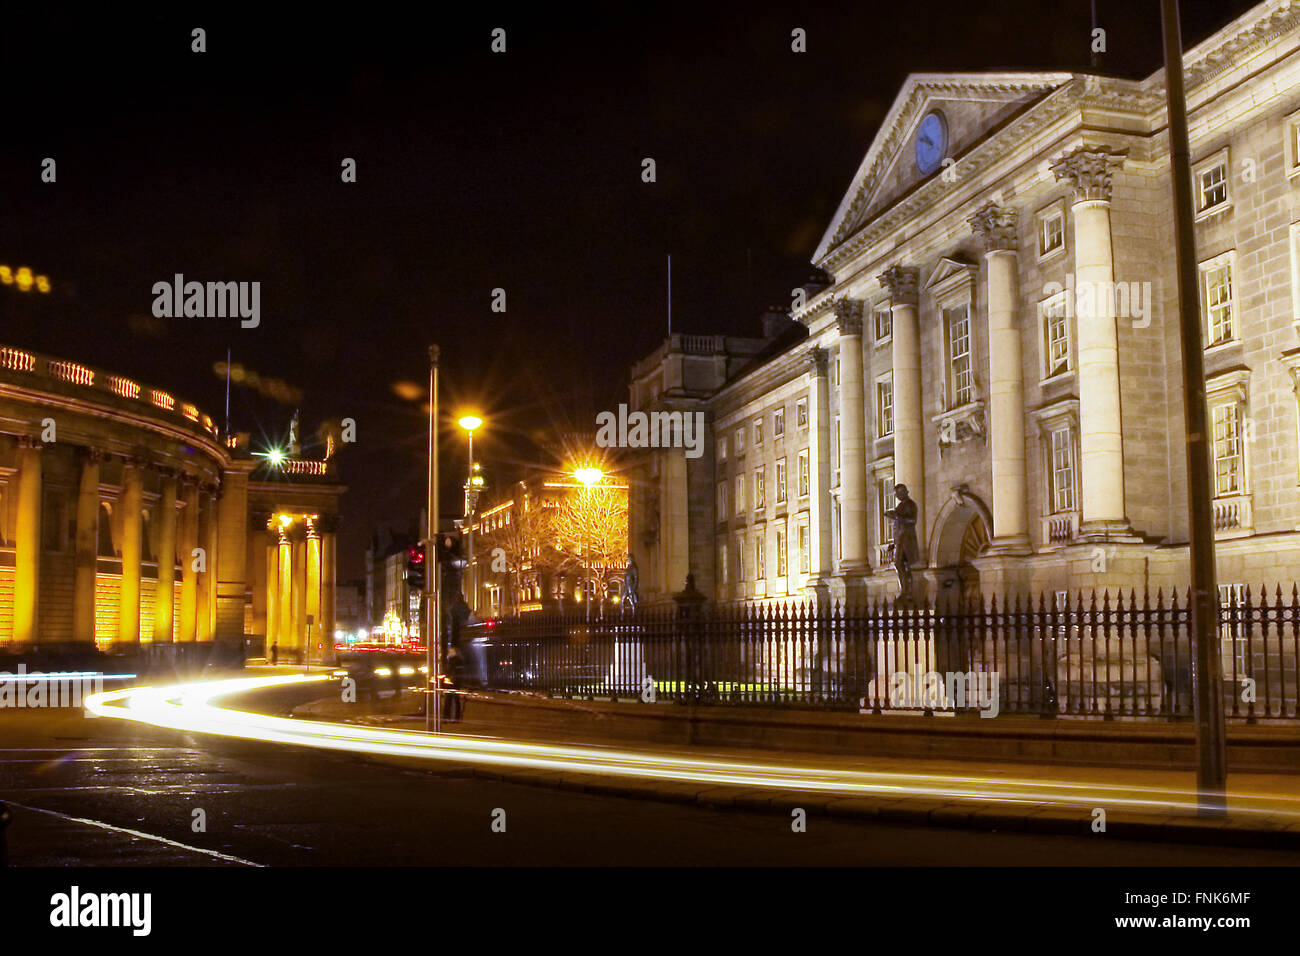 Car trails in front of Trinity College in Dublin city, Republic of Ireland at night - Stock Image